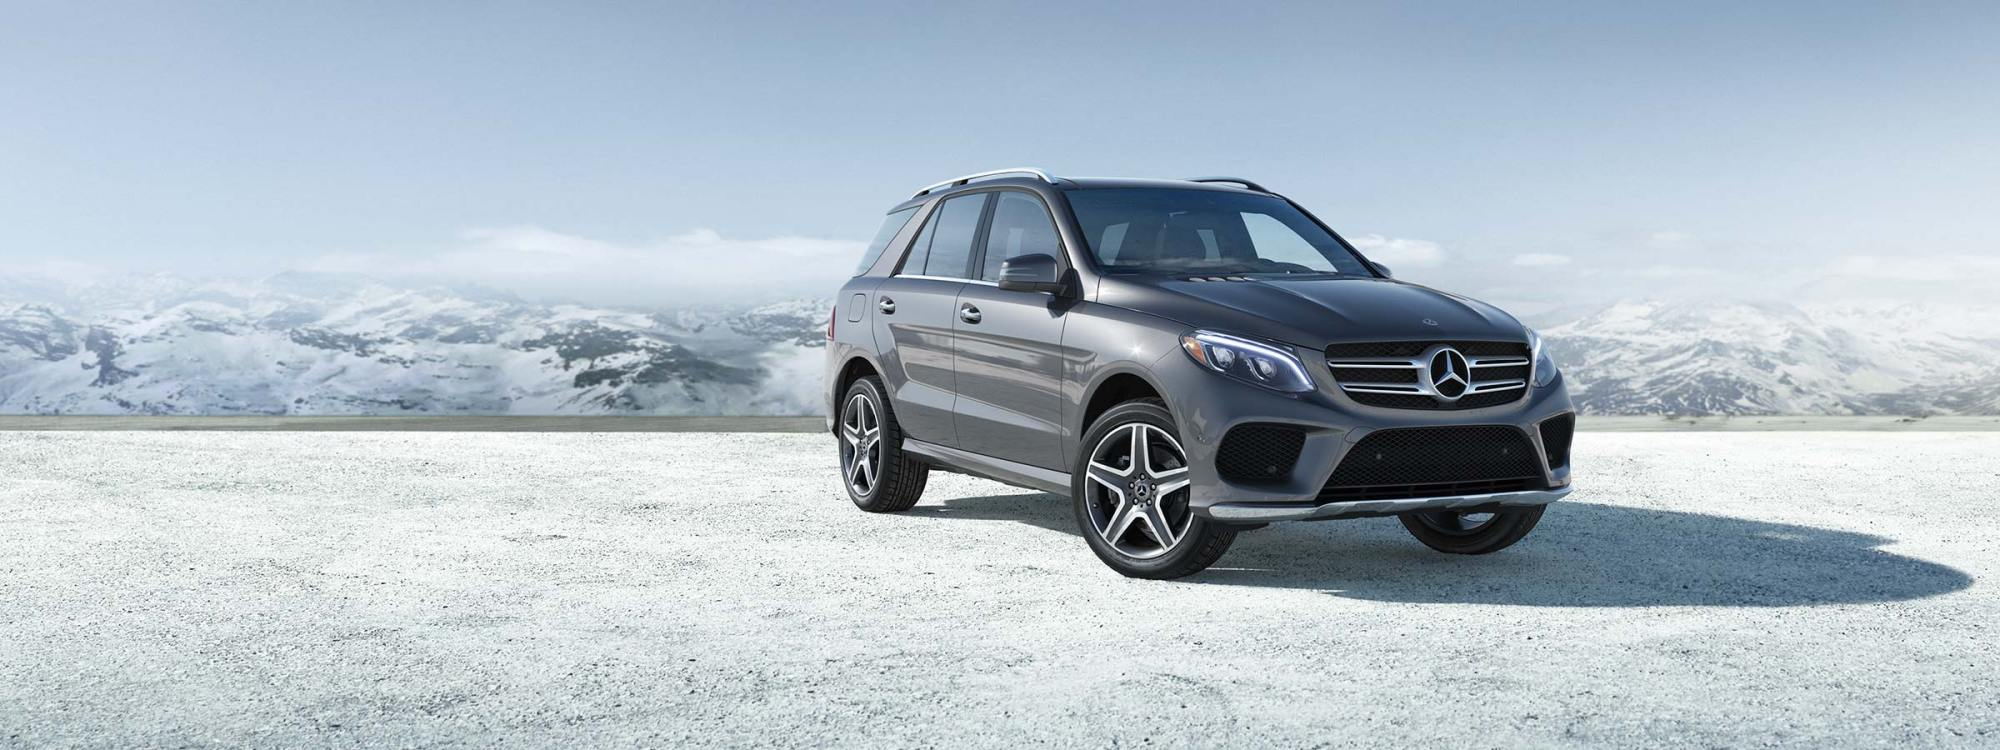 hight resolution of a grey 2019 gle 400 suv parked in front of snow covered mountains